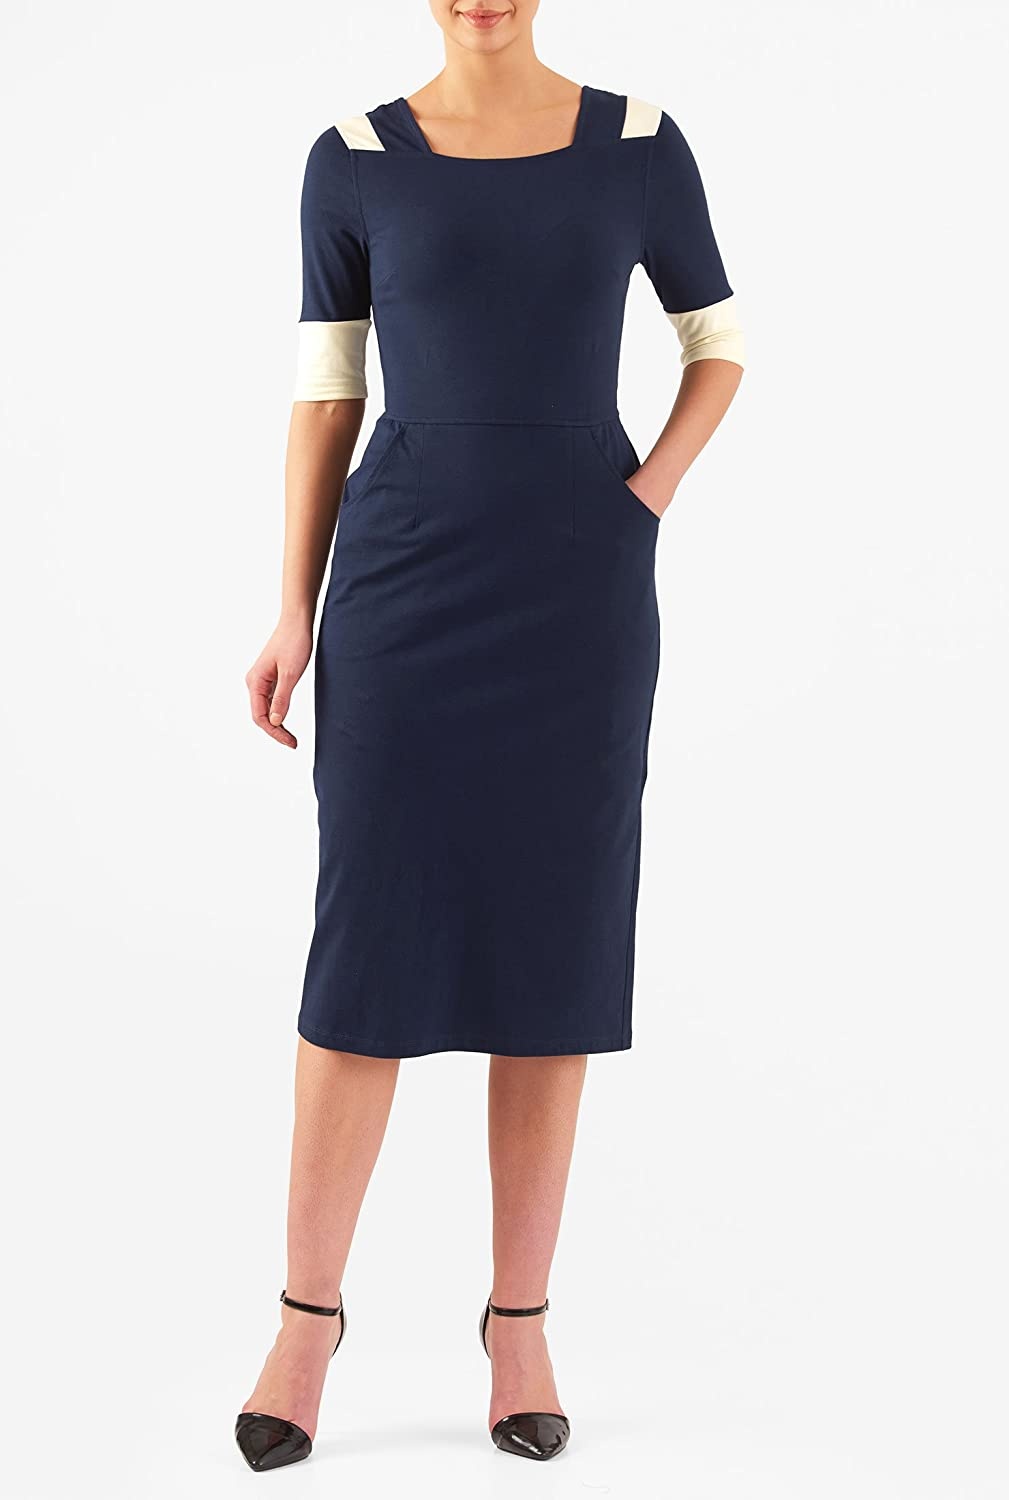 1960s Style Dresses- Retro Inspired Fashion eShakti Womens Cotton knit contrast trim sheath dress $49.95 AT vintagedancer.com